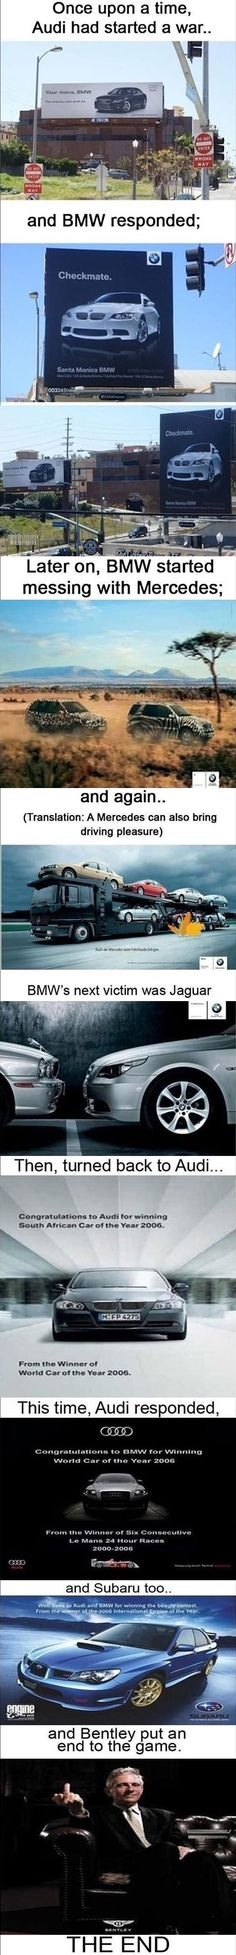 Hilarious War of Car Manufacturers – Earthly Mission